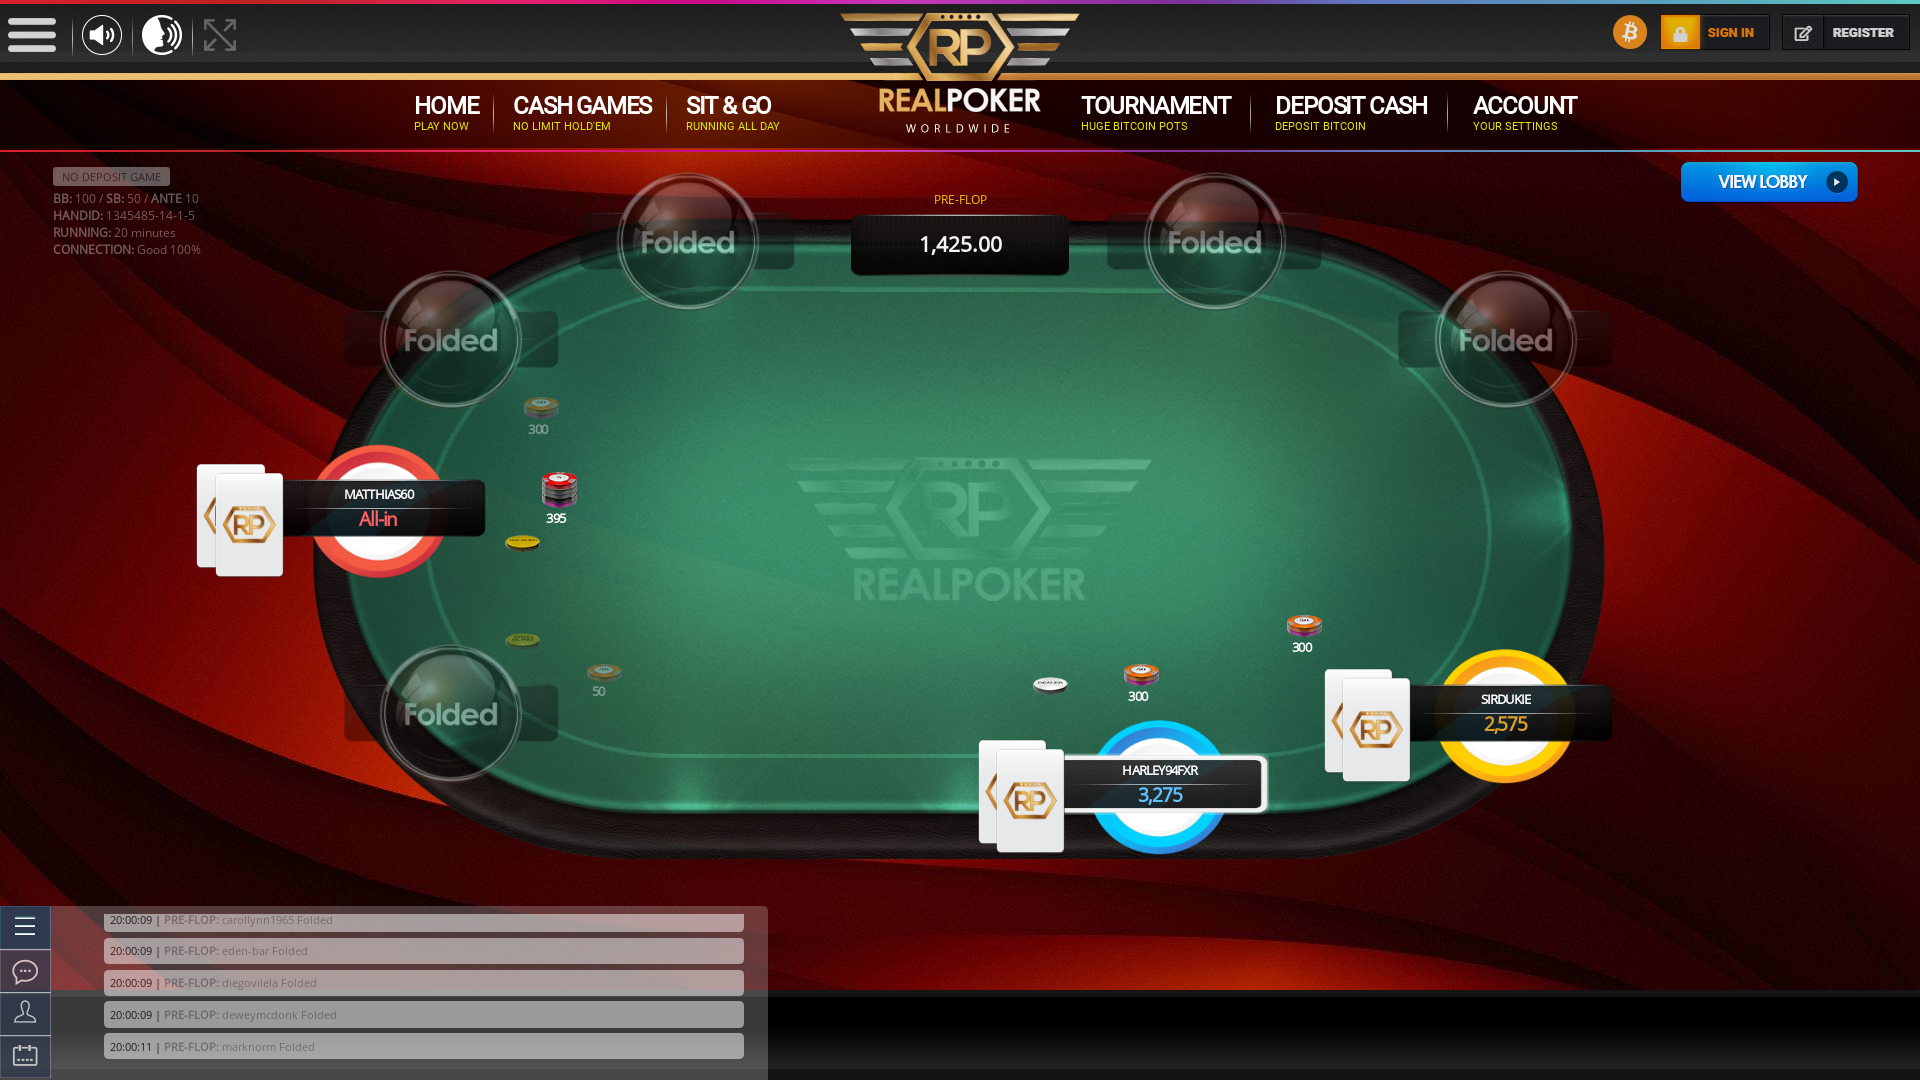 England Casino Bitcoin Poker 10 Player